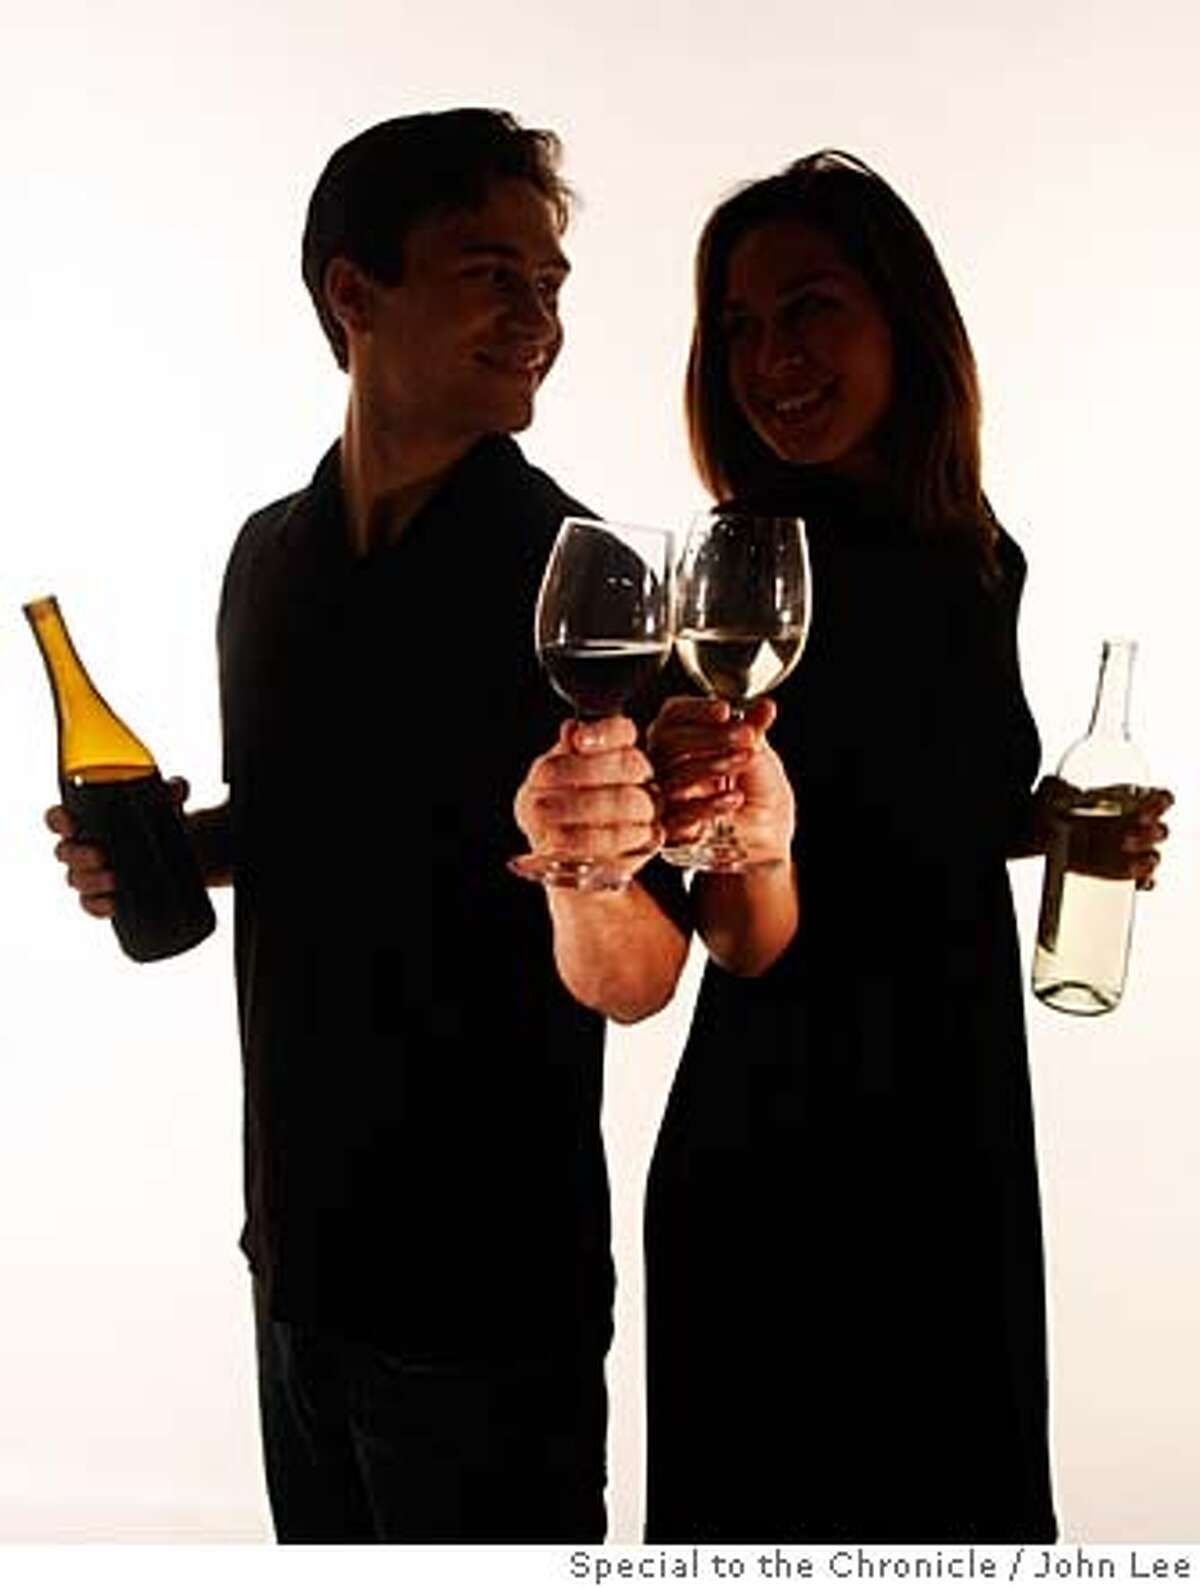 WINELOVERS_08_19_JOHNLEE.JPG For story about couples trying to get the other to drink either red or white wines. By JOHN LEE/SPECIAL TO THE CHRONICLE